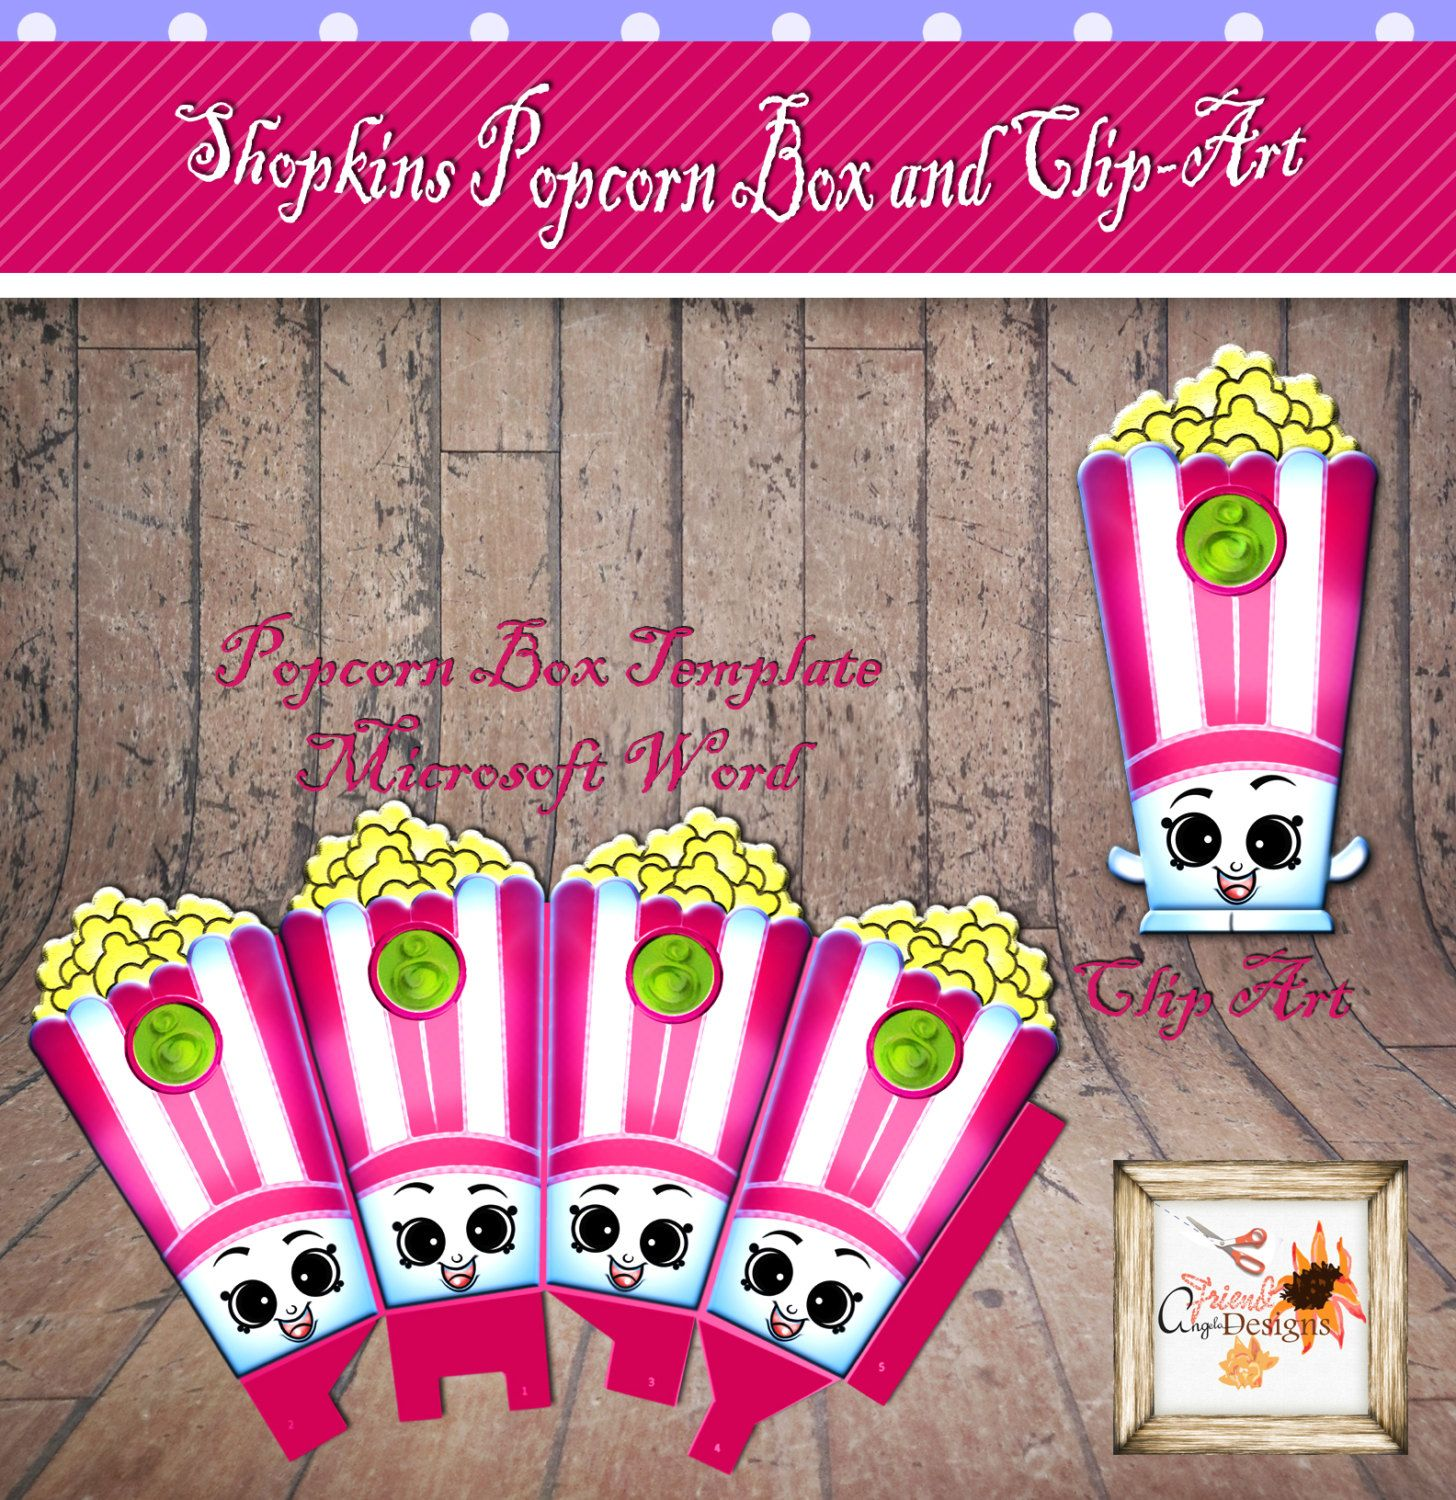 Superior Shopkins Poppy Corn Birthday Party Printable Template With Poppy Corn  Clip Art In Microsoft Word